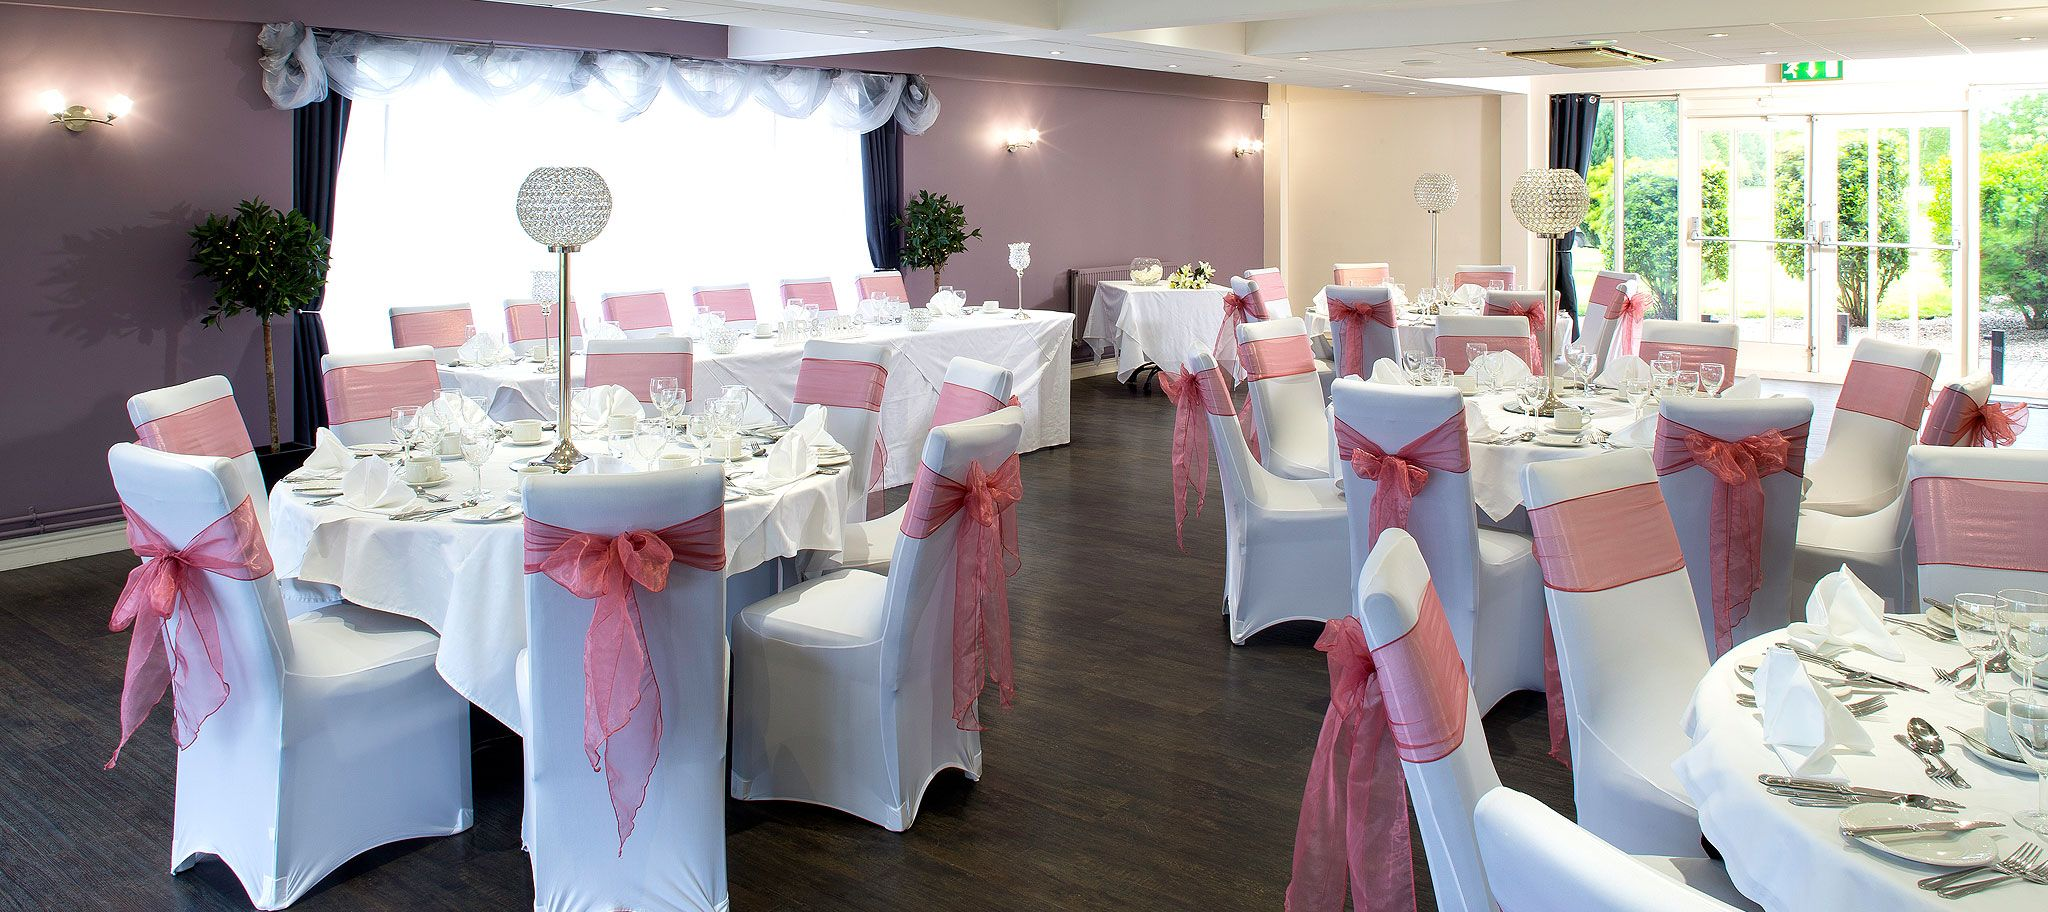 Weddings The Perfect Wedding Venue For Your Special Day Stonebridge Golf Club Is